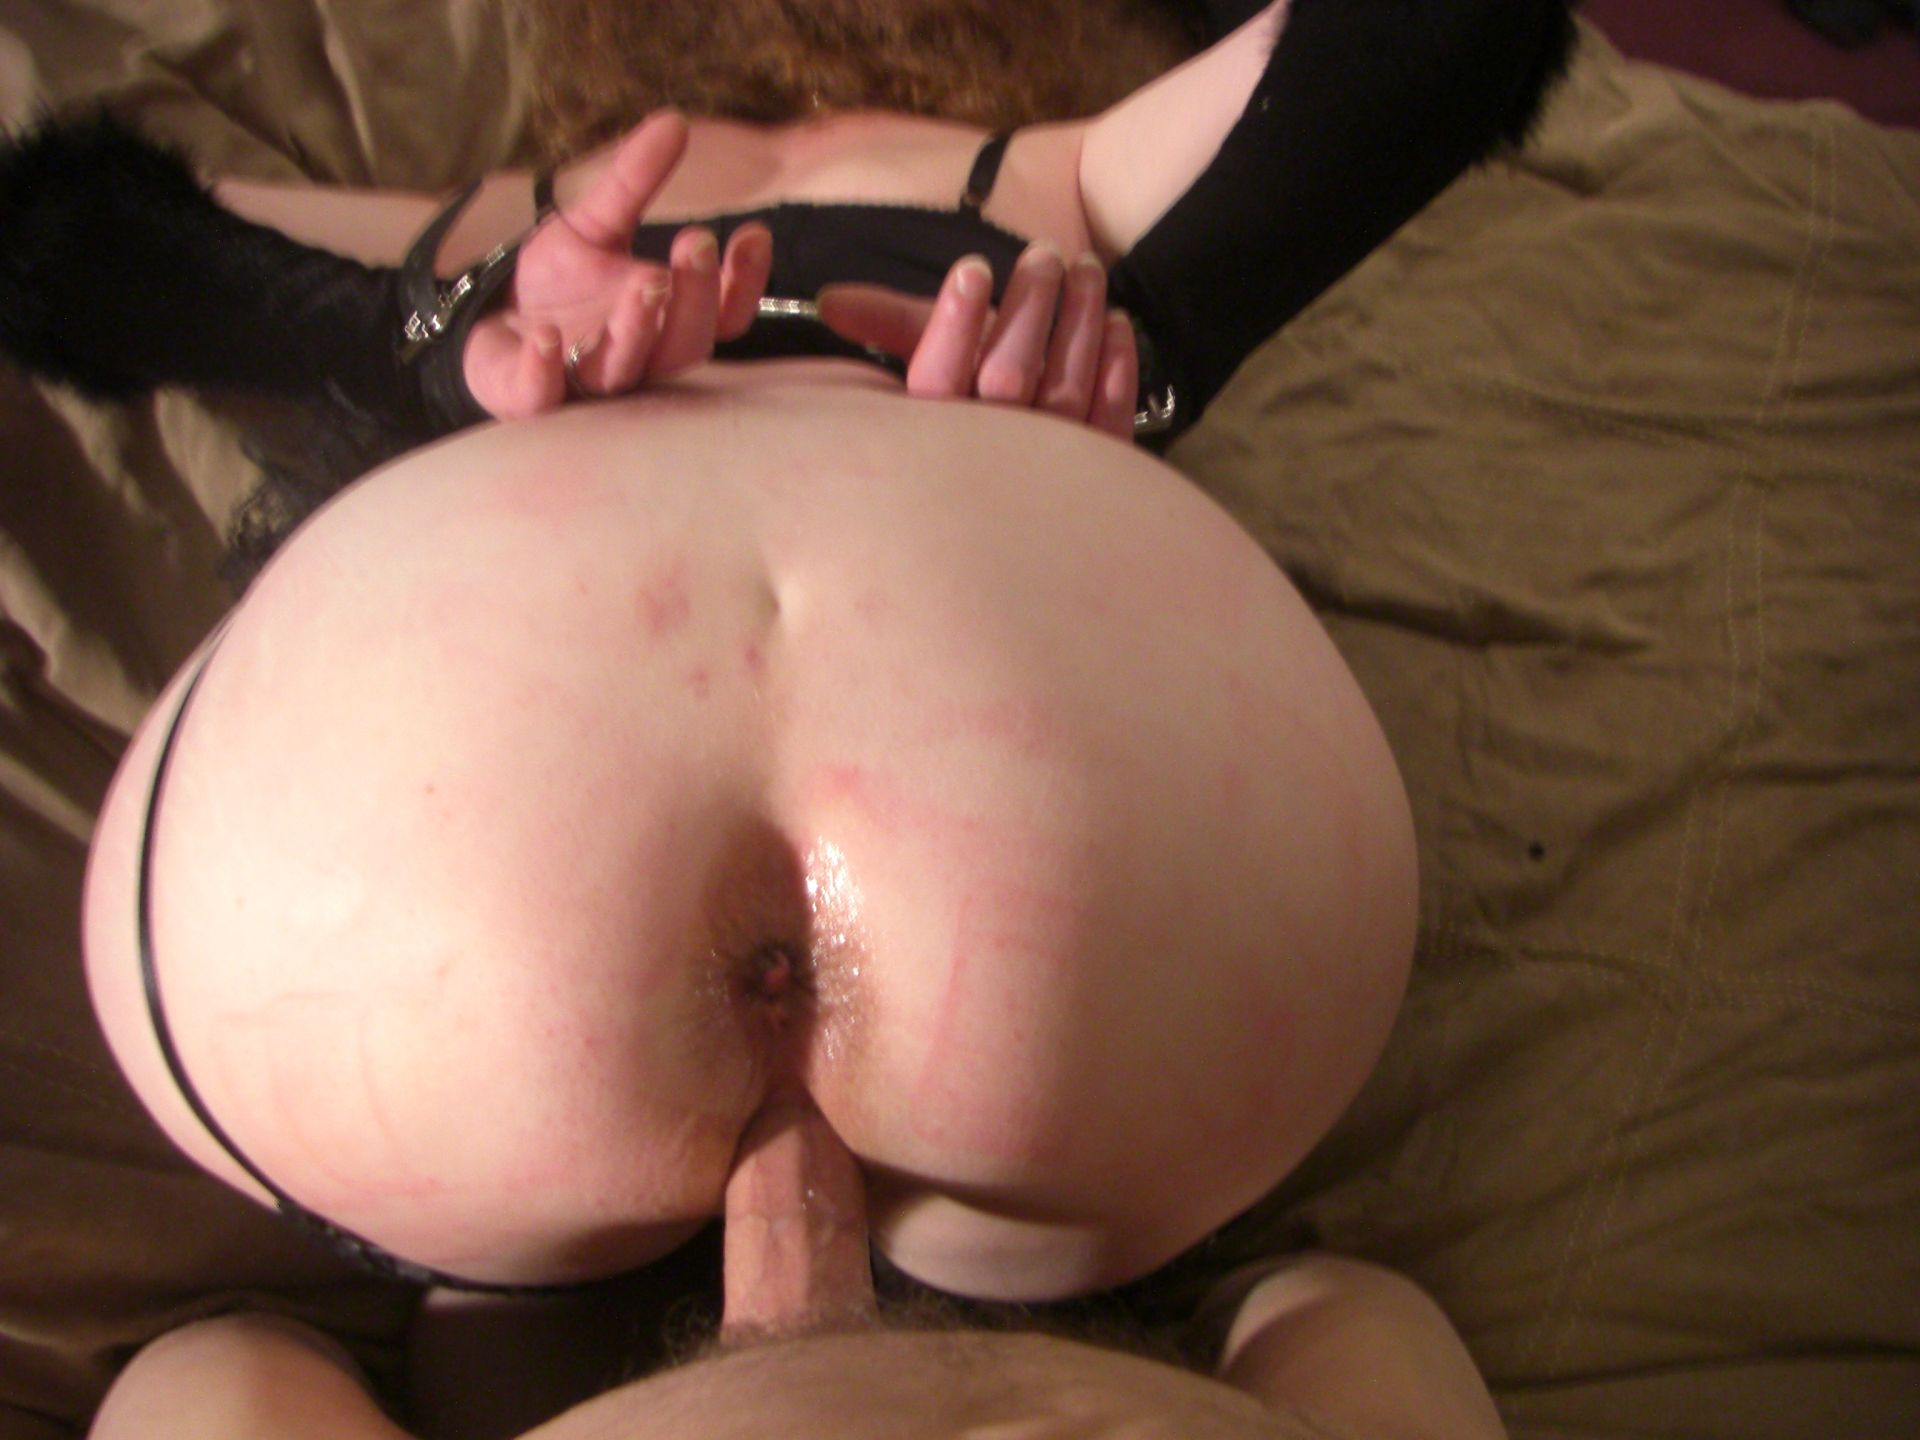 Fucking Pic Full HD Sex toy insertion